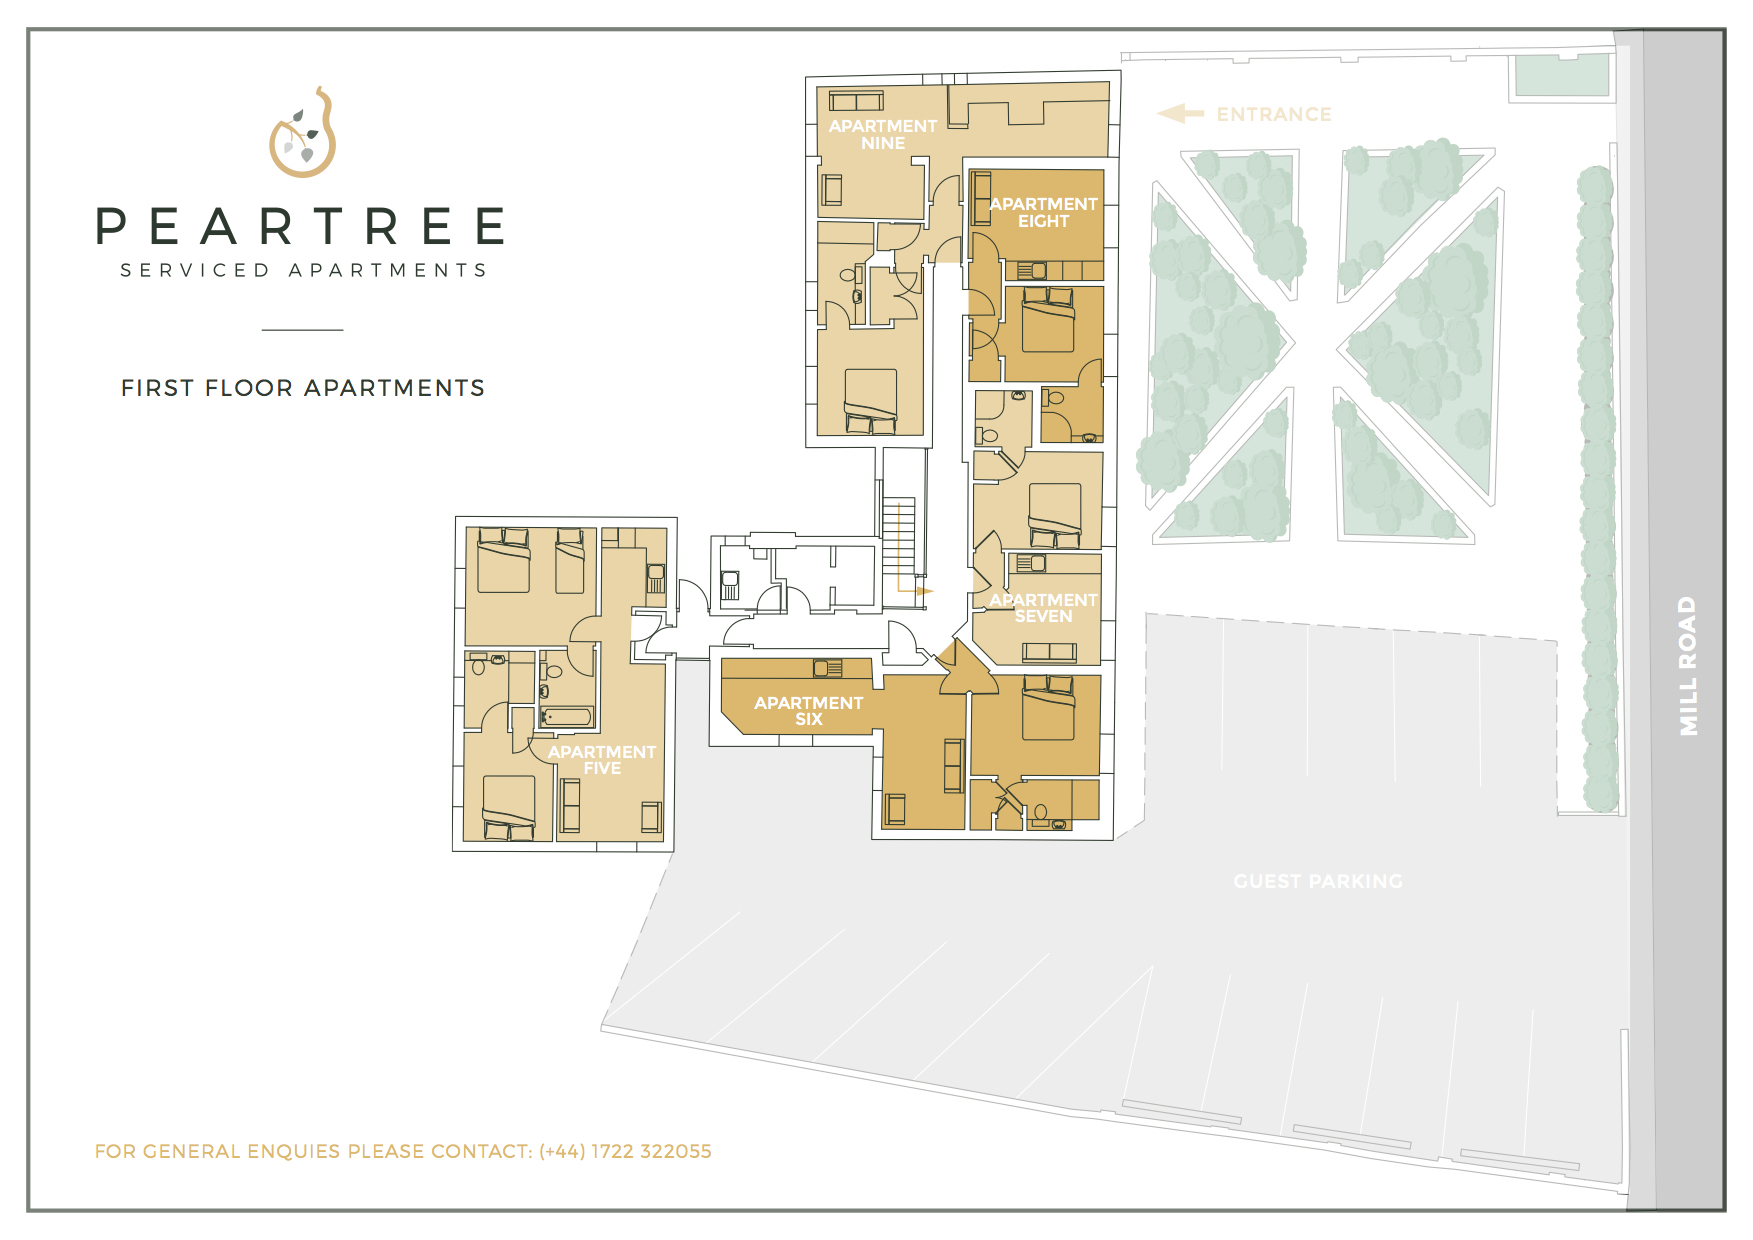 Peartree First Floor Apartments